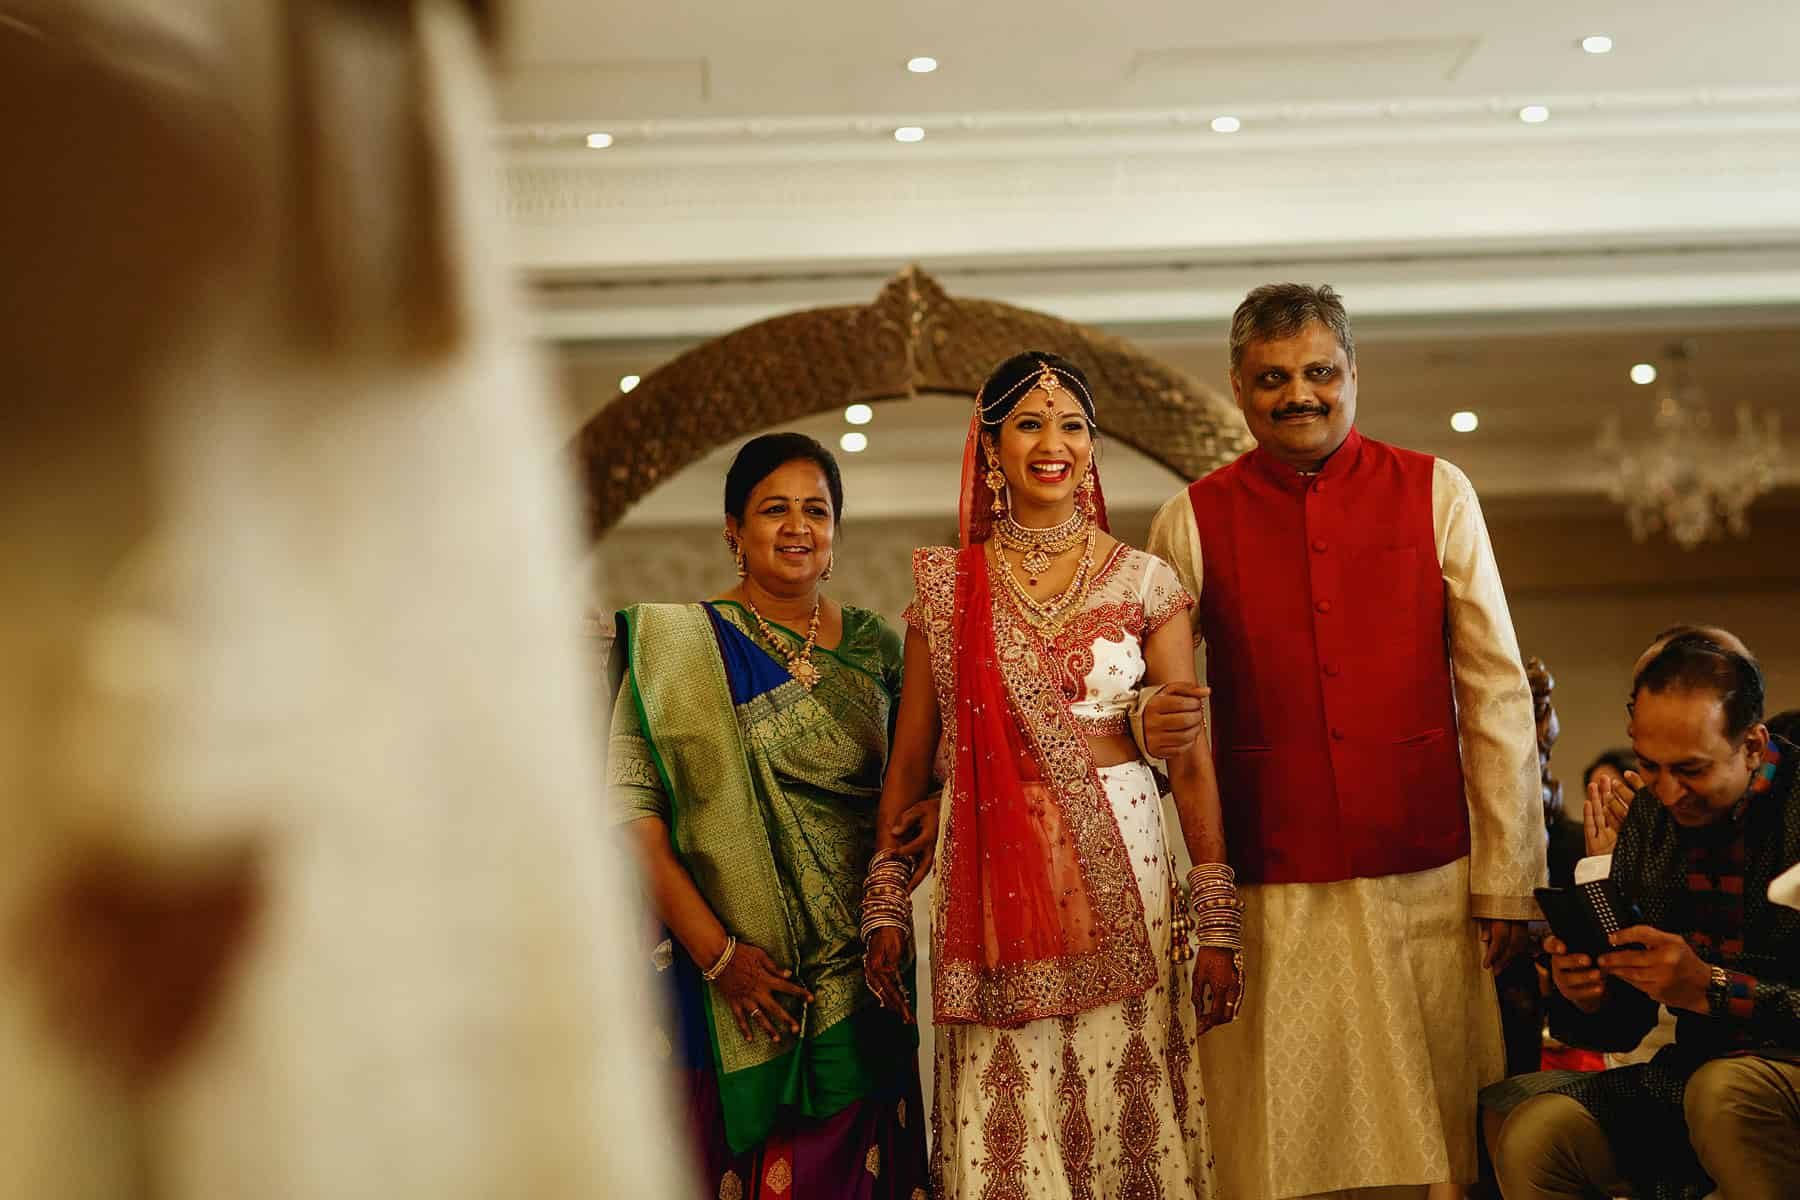 shendish manor hindu wedding photography